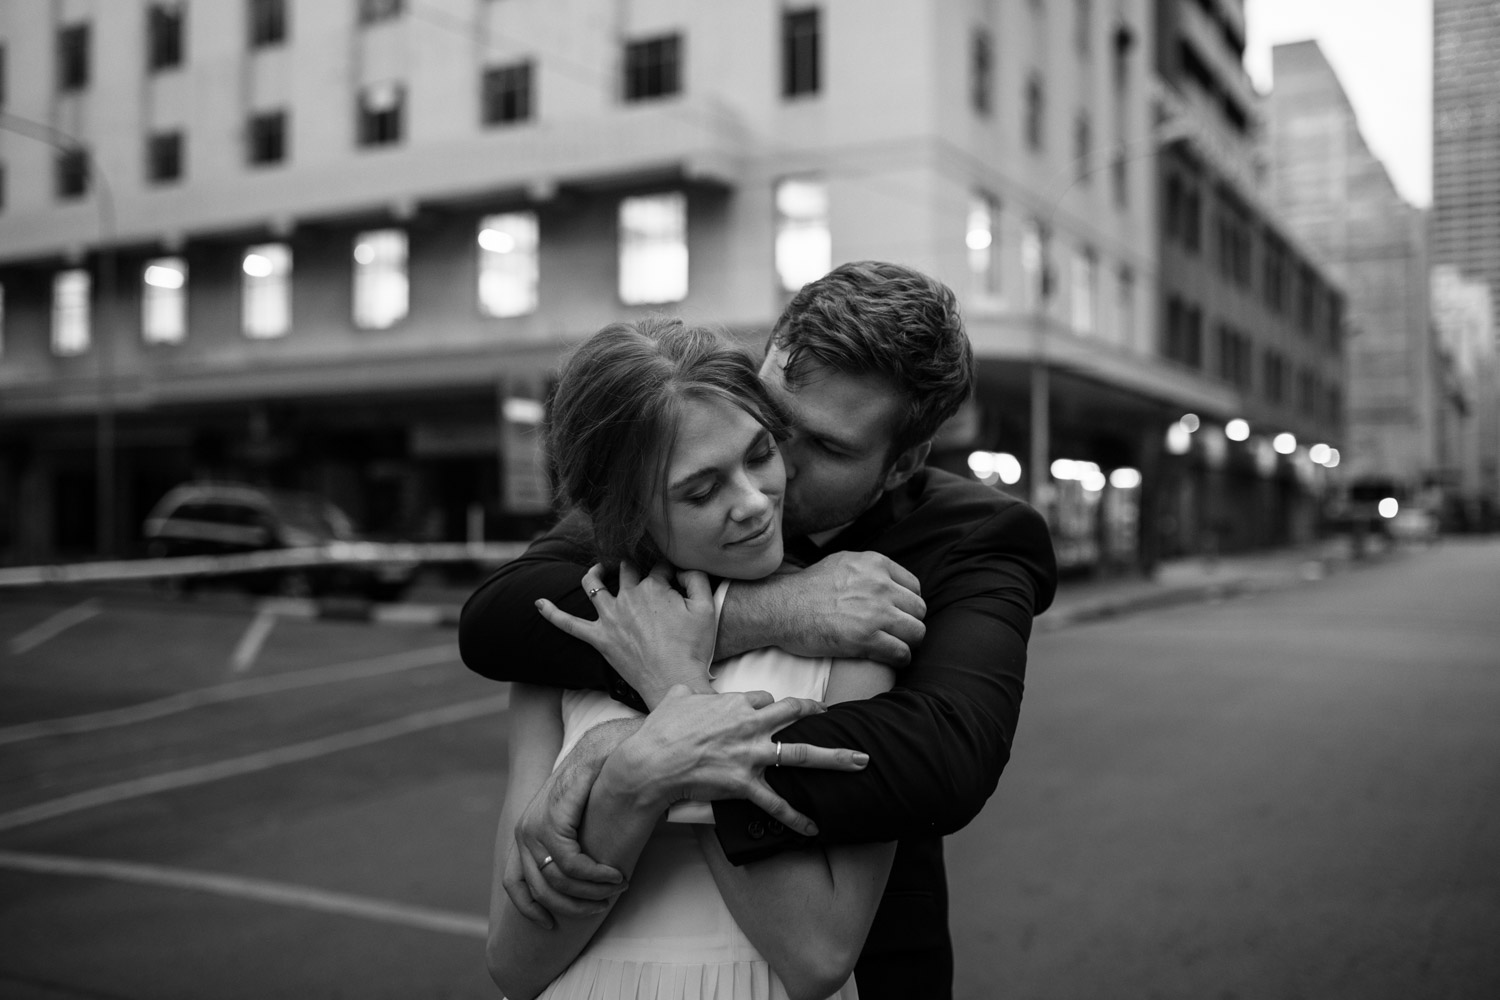 Ideas For Wedding Photography Poses In City